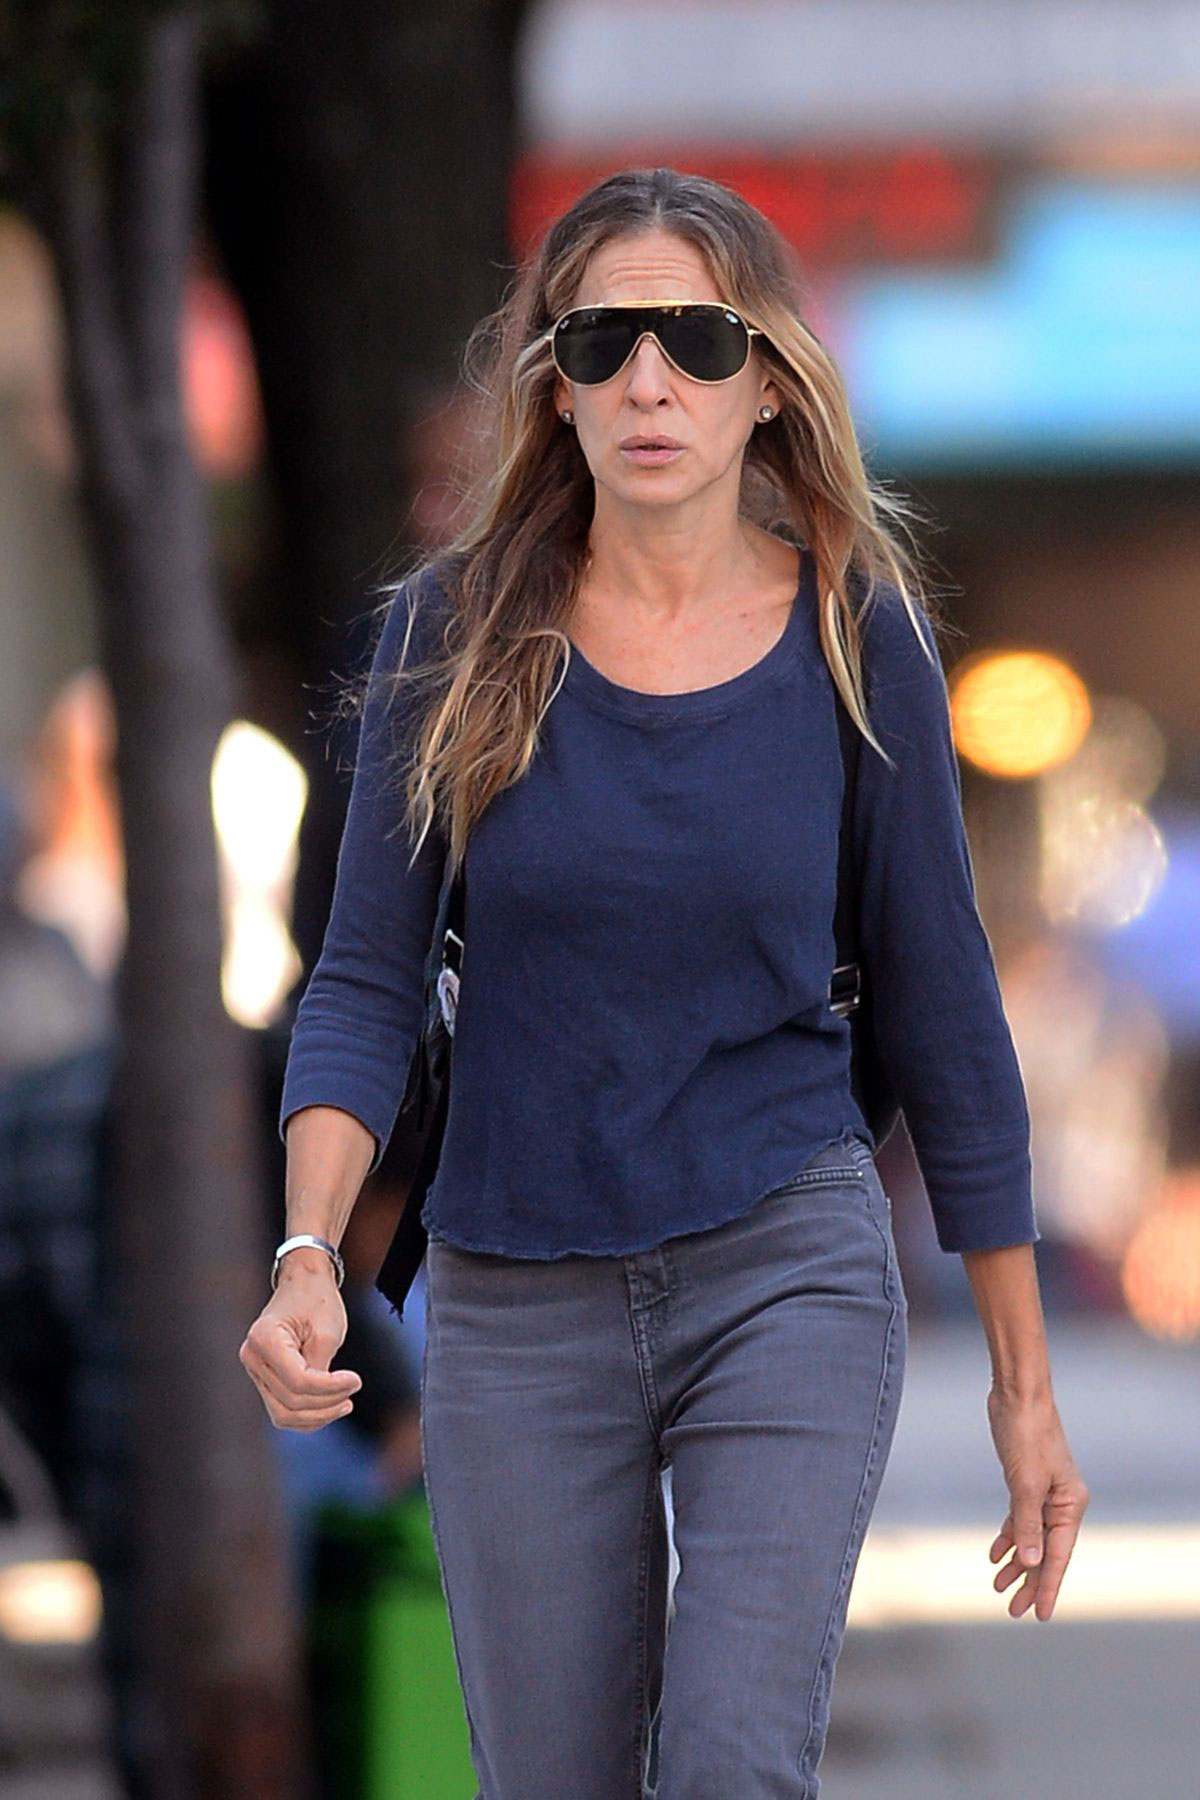 Sarah Jessica Parker steps out in New York wearing a multi